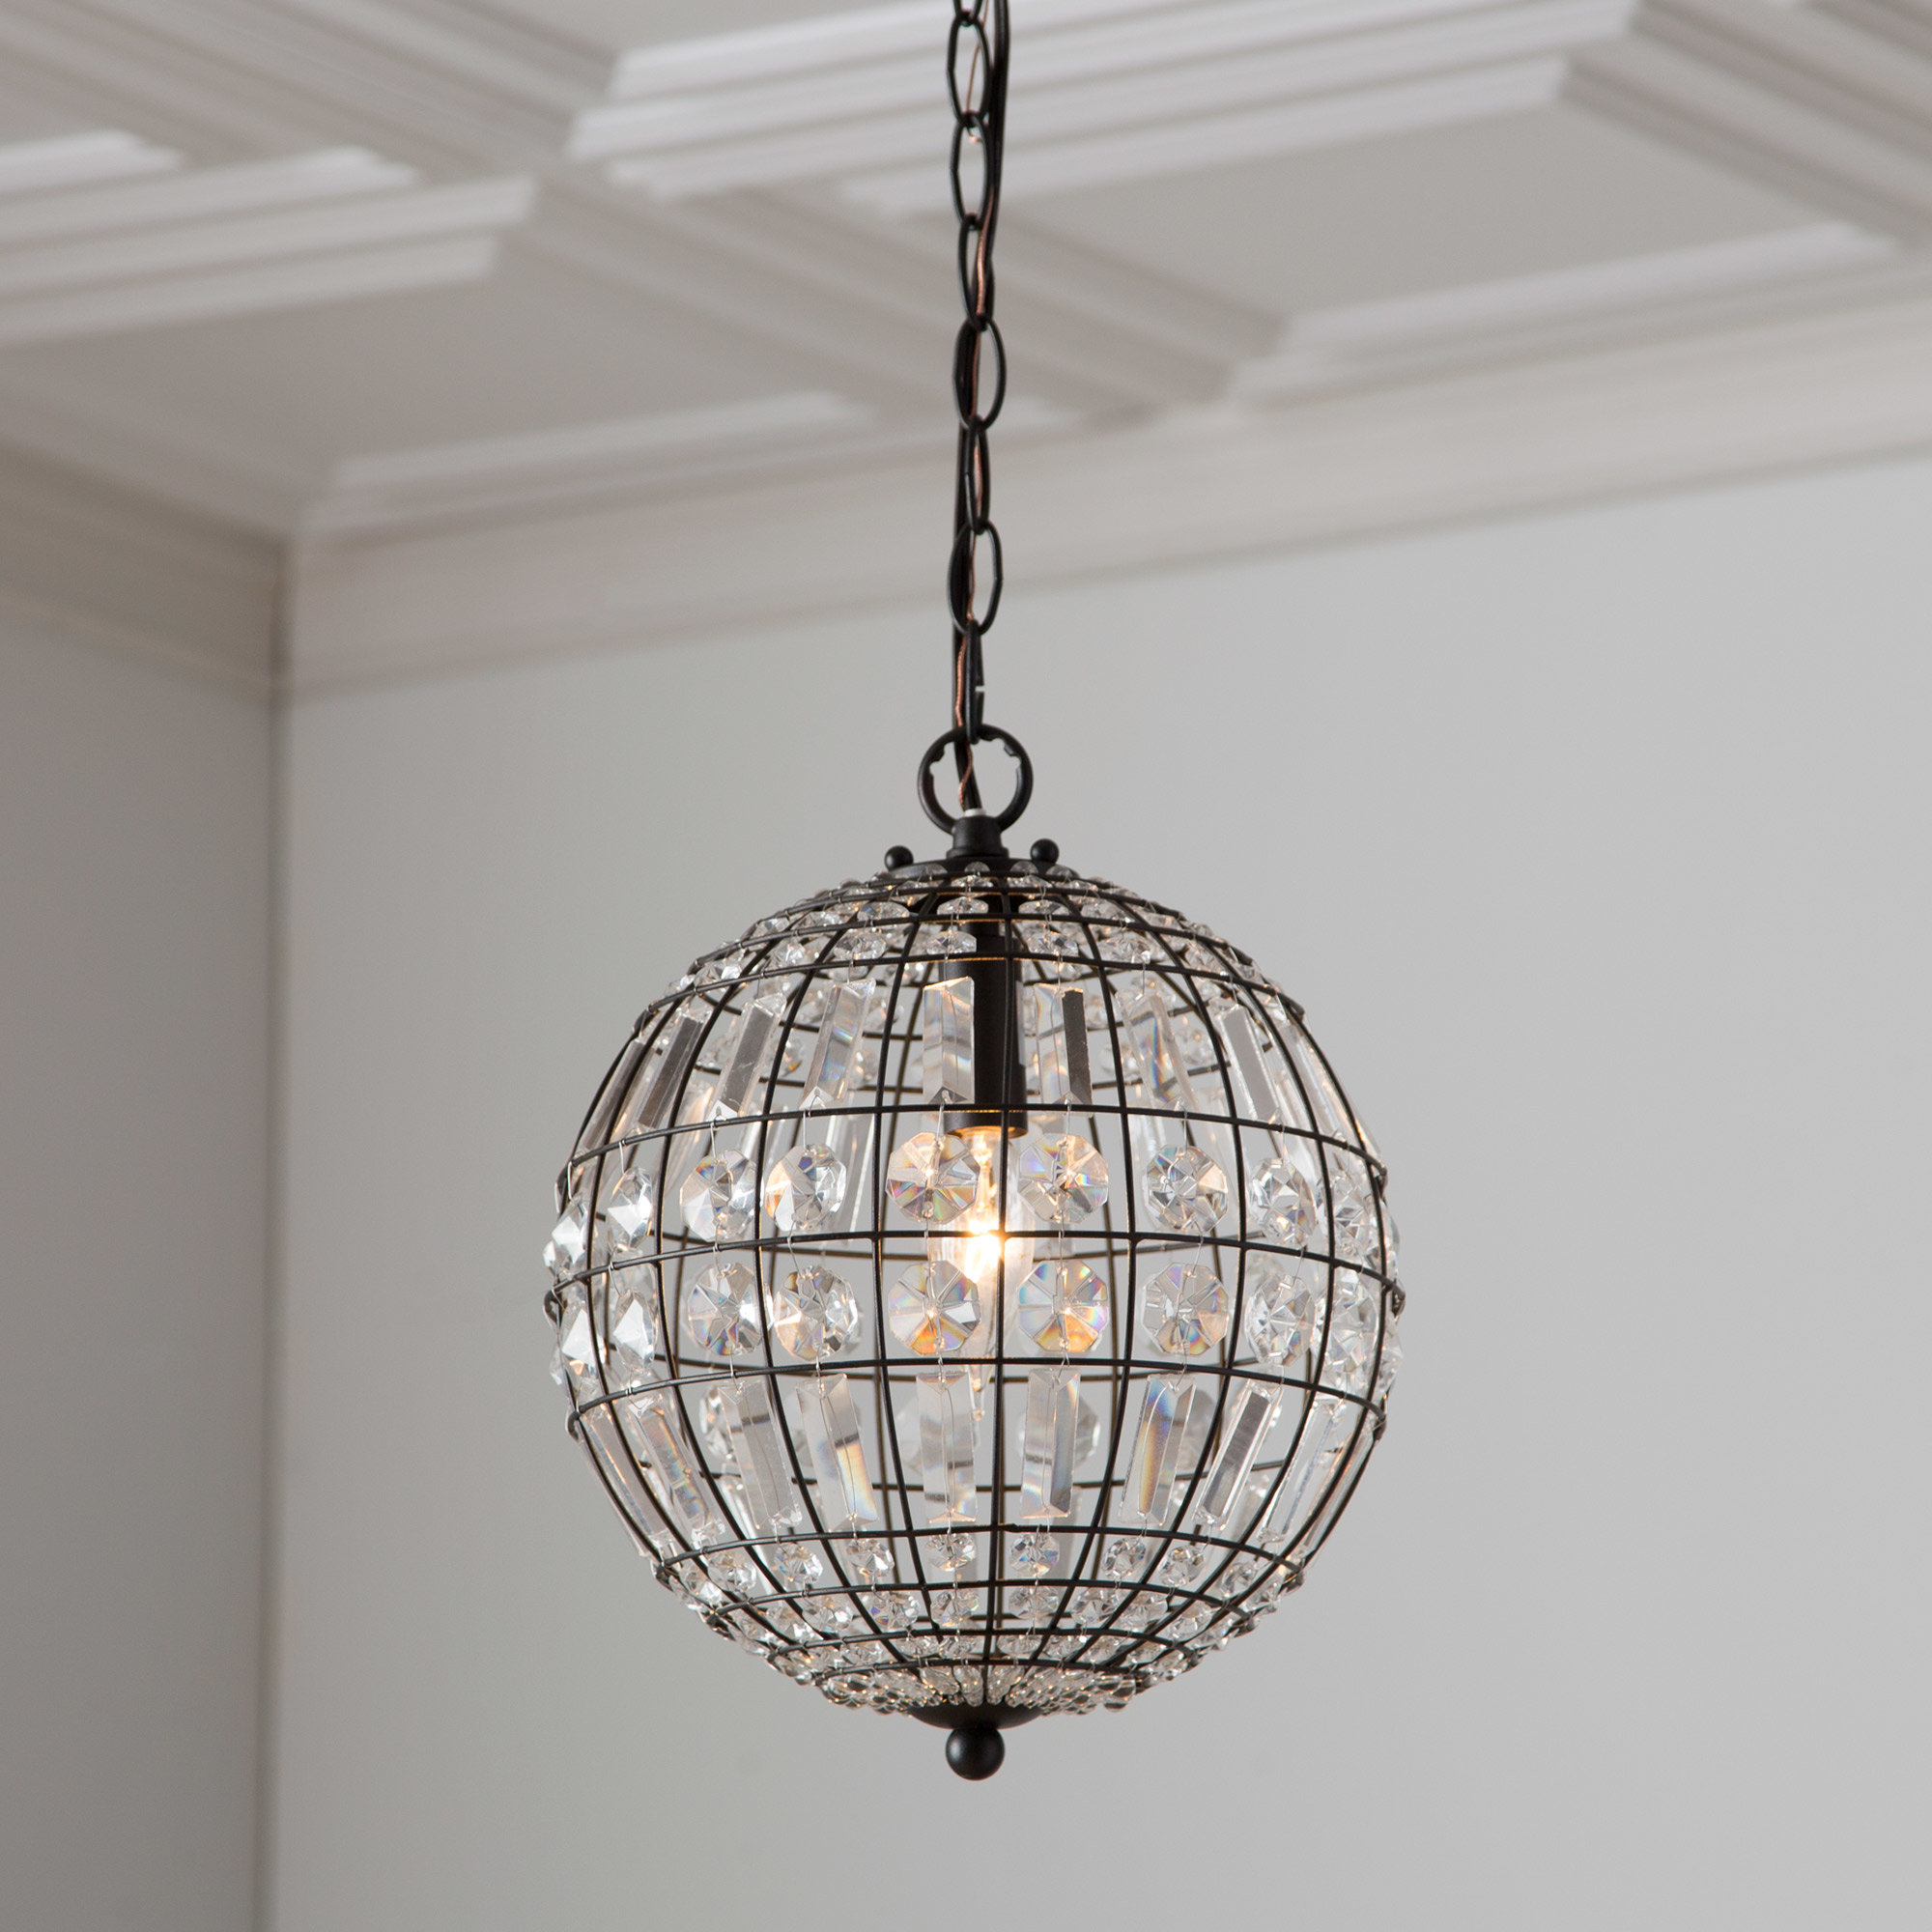 2020 Birch Lane™ Heritage Elivra 1 Light Globe Pendant For Demi 1 Light Globe Pendants (Gallery 7 of 20)